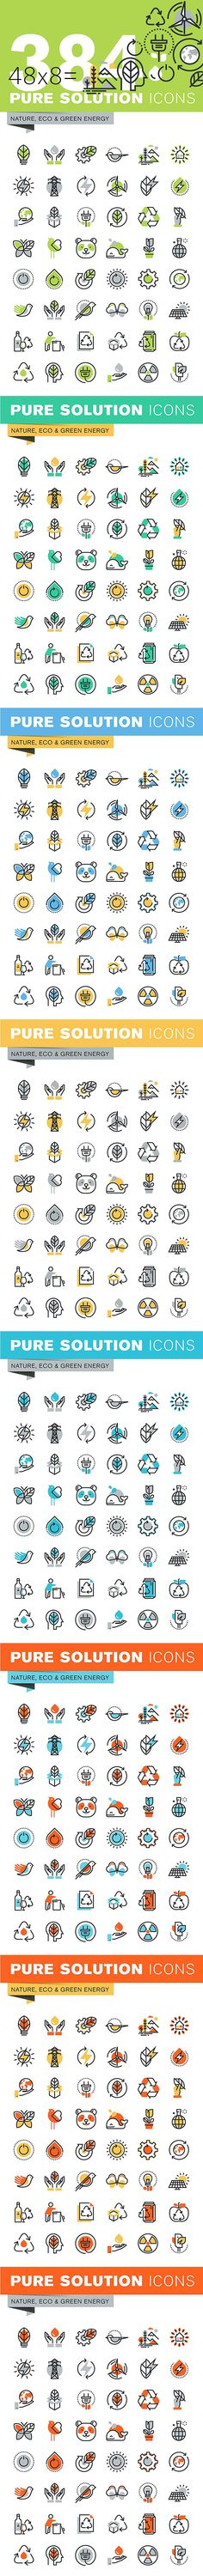 awesome Set of Thin Line Flat of Environment  #animal #app #business #concept #design #ecology #energy #environment #flat #green #icon #illustration #line #mobile #natural #nature #object #recycling #RENEWABLE #sign #SOLAR #SUSTAINABLE #symbol #technology #thin #vector #water #web #website #wind Check more at https://creativemarket.link/set-thin-line-flat-environment/